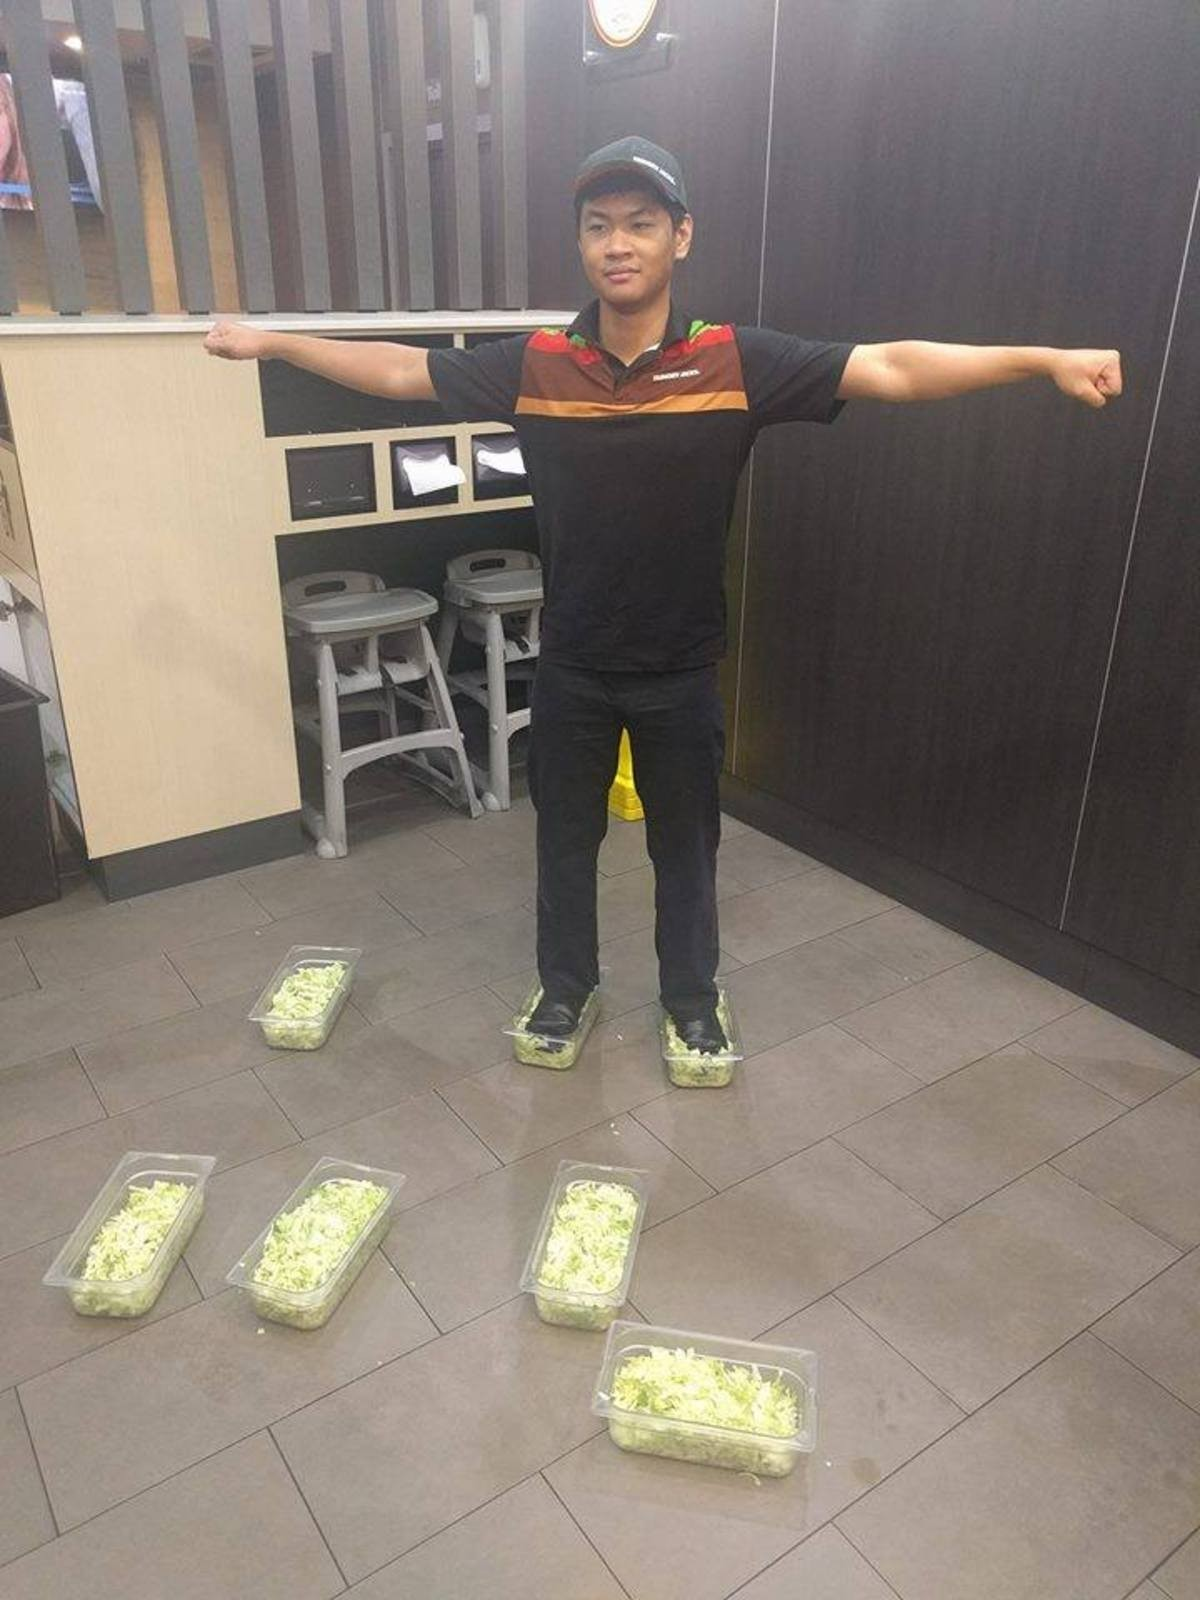 too powerful to be stopped. .. Didn't the original foot lettuce guy get fired? Also - loss paddle please.